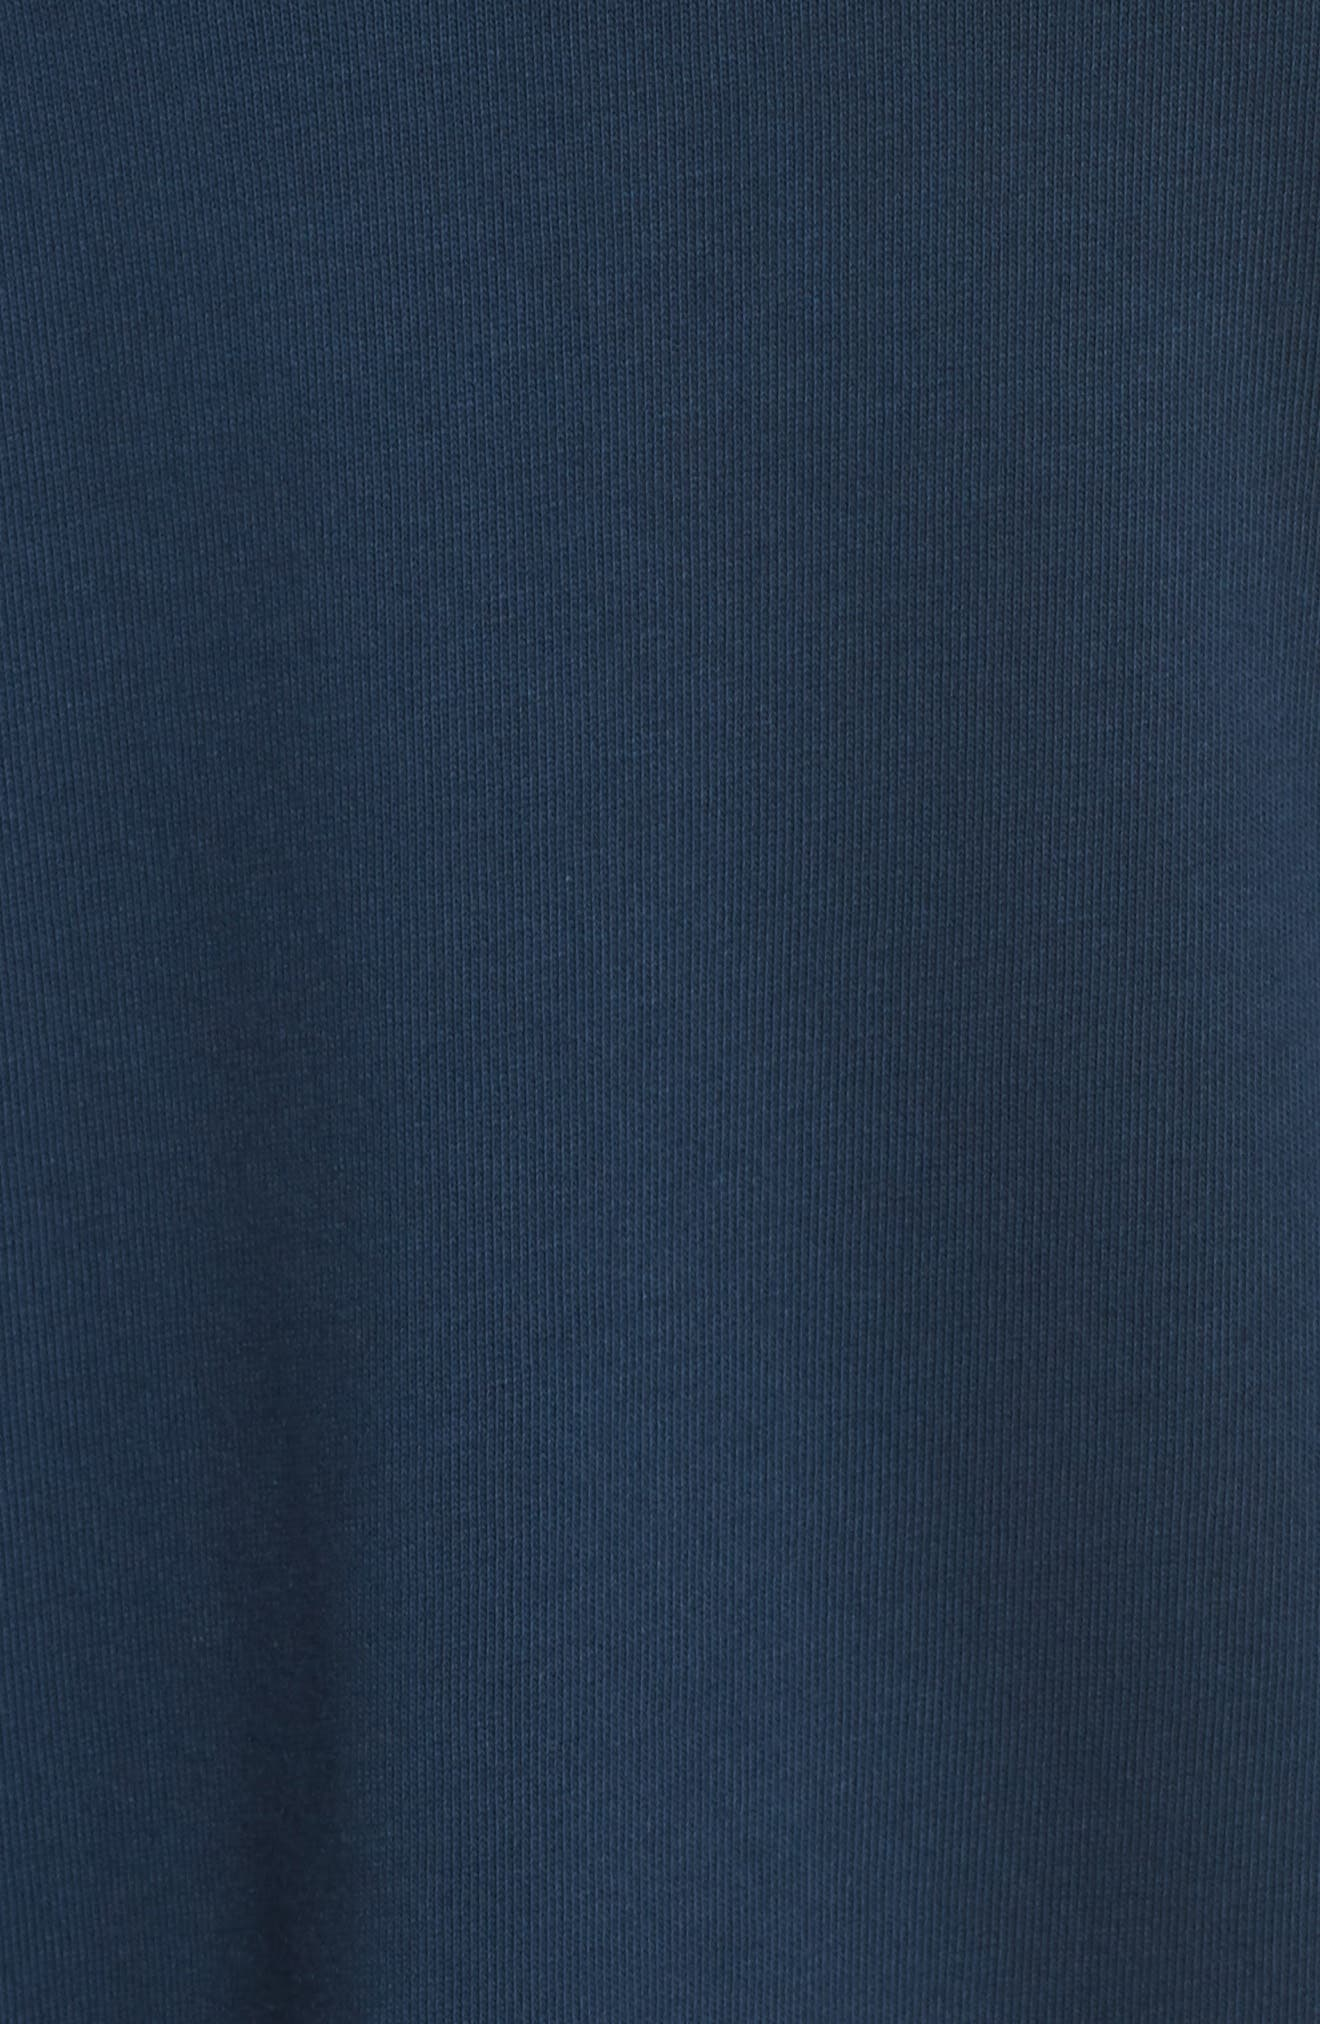 Simhasana Sweatshirt,                             Alternate thumbnail 5, color,                             BEETLE BLUE